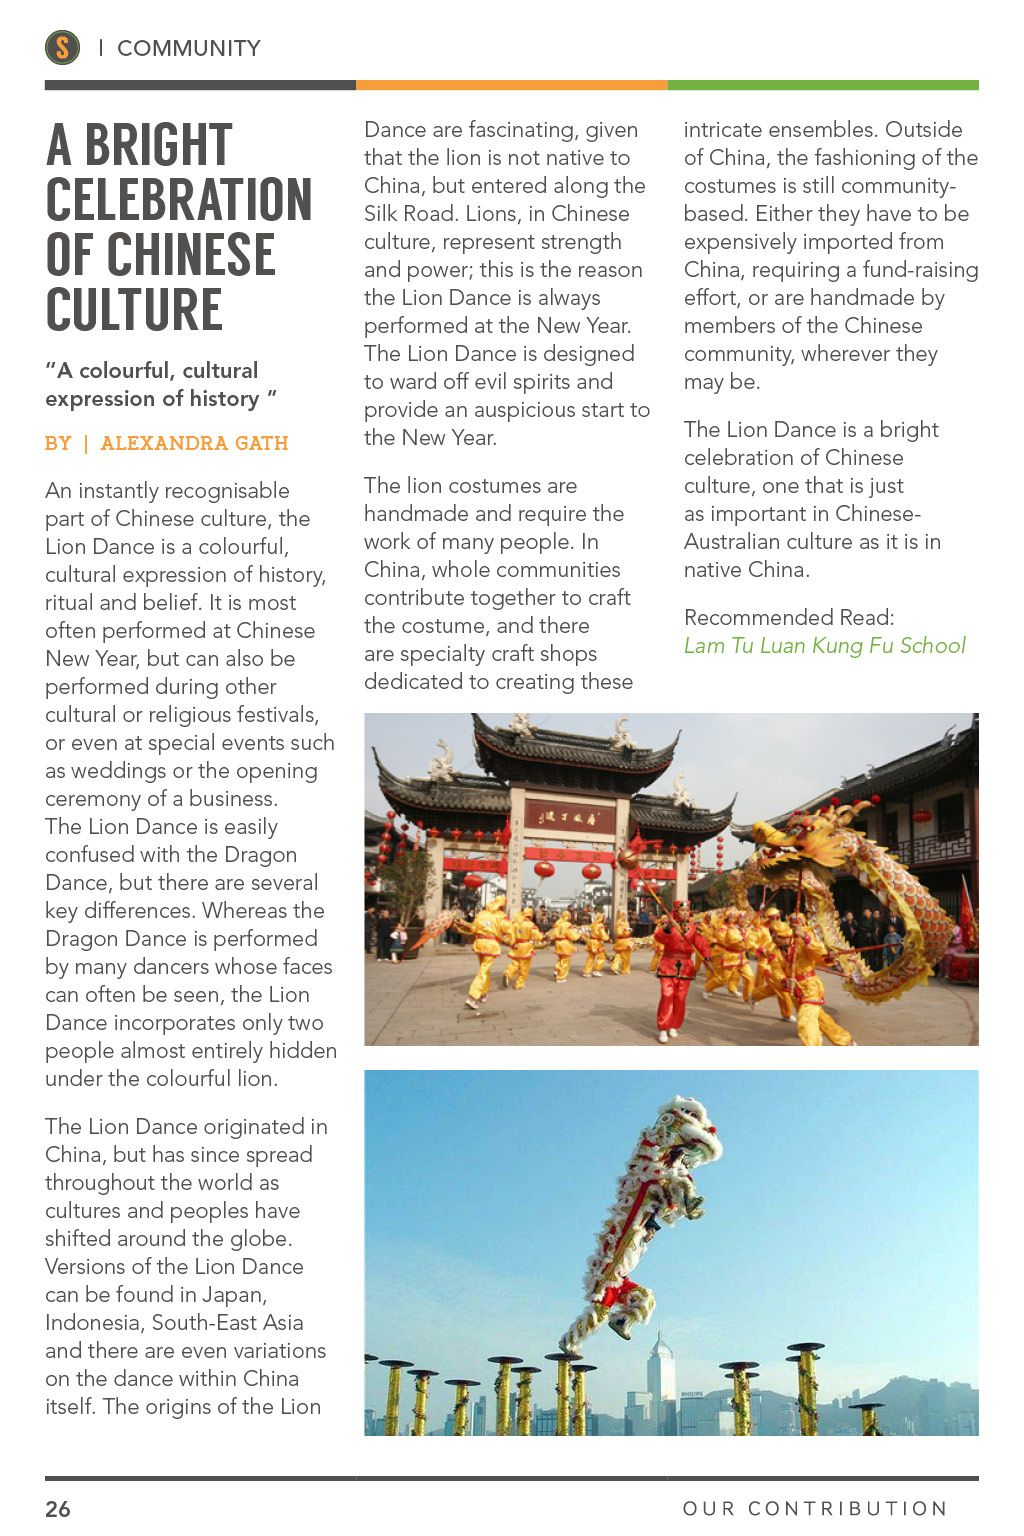 508 Best Images About The Outsiders: A Bright Celebration Of Chinese Culture. SIBW Issue#1